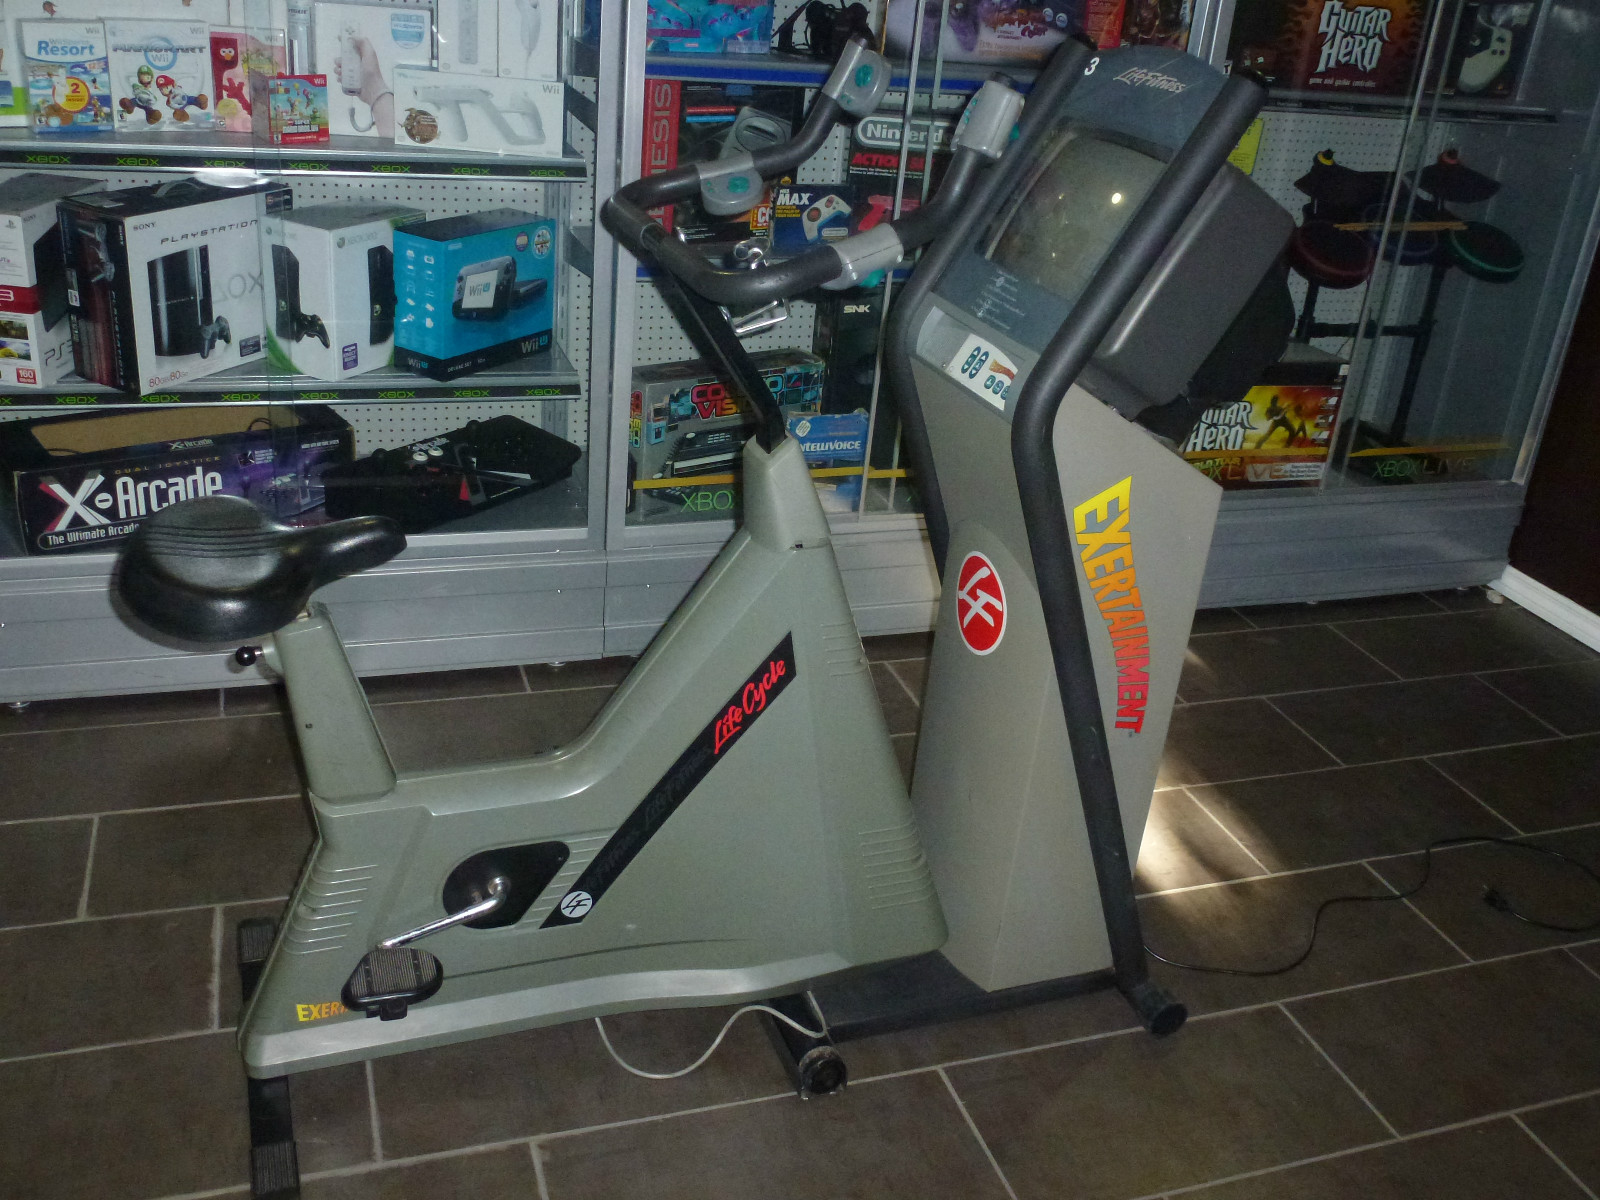 The fitness nut in me wishes I had this SNES exercise bike screenshot